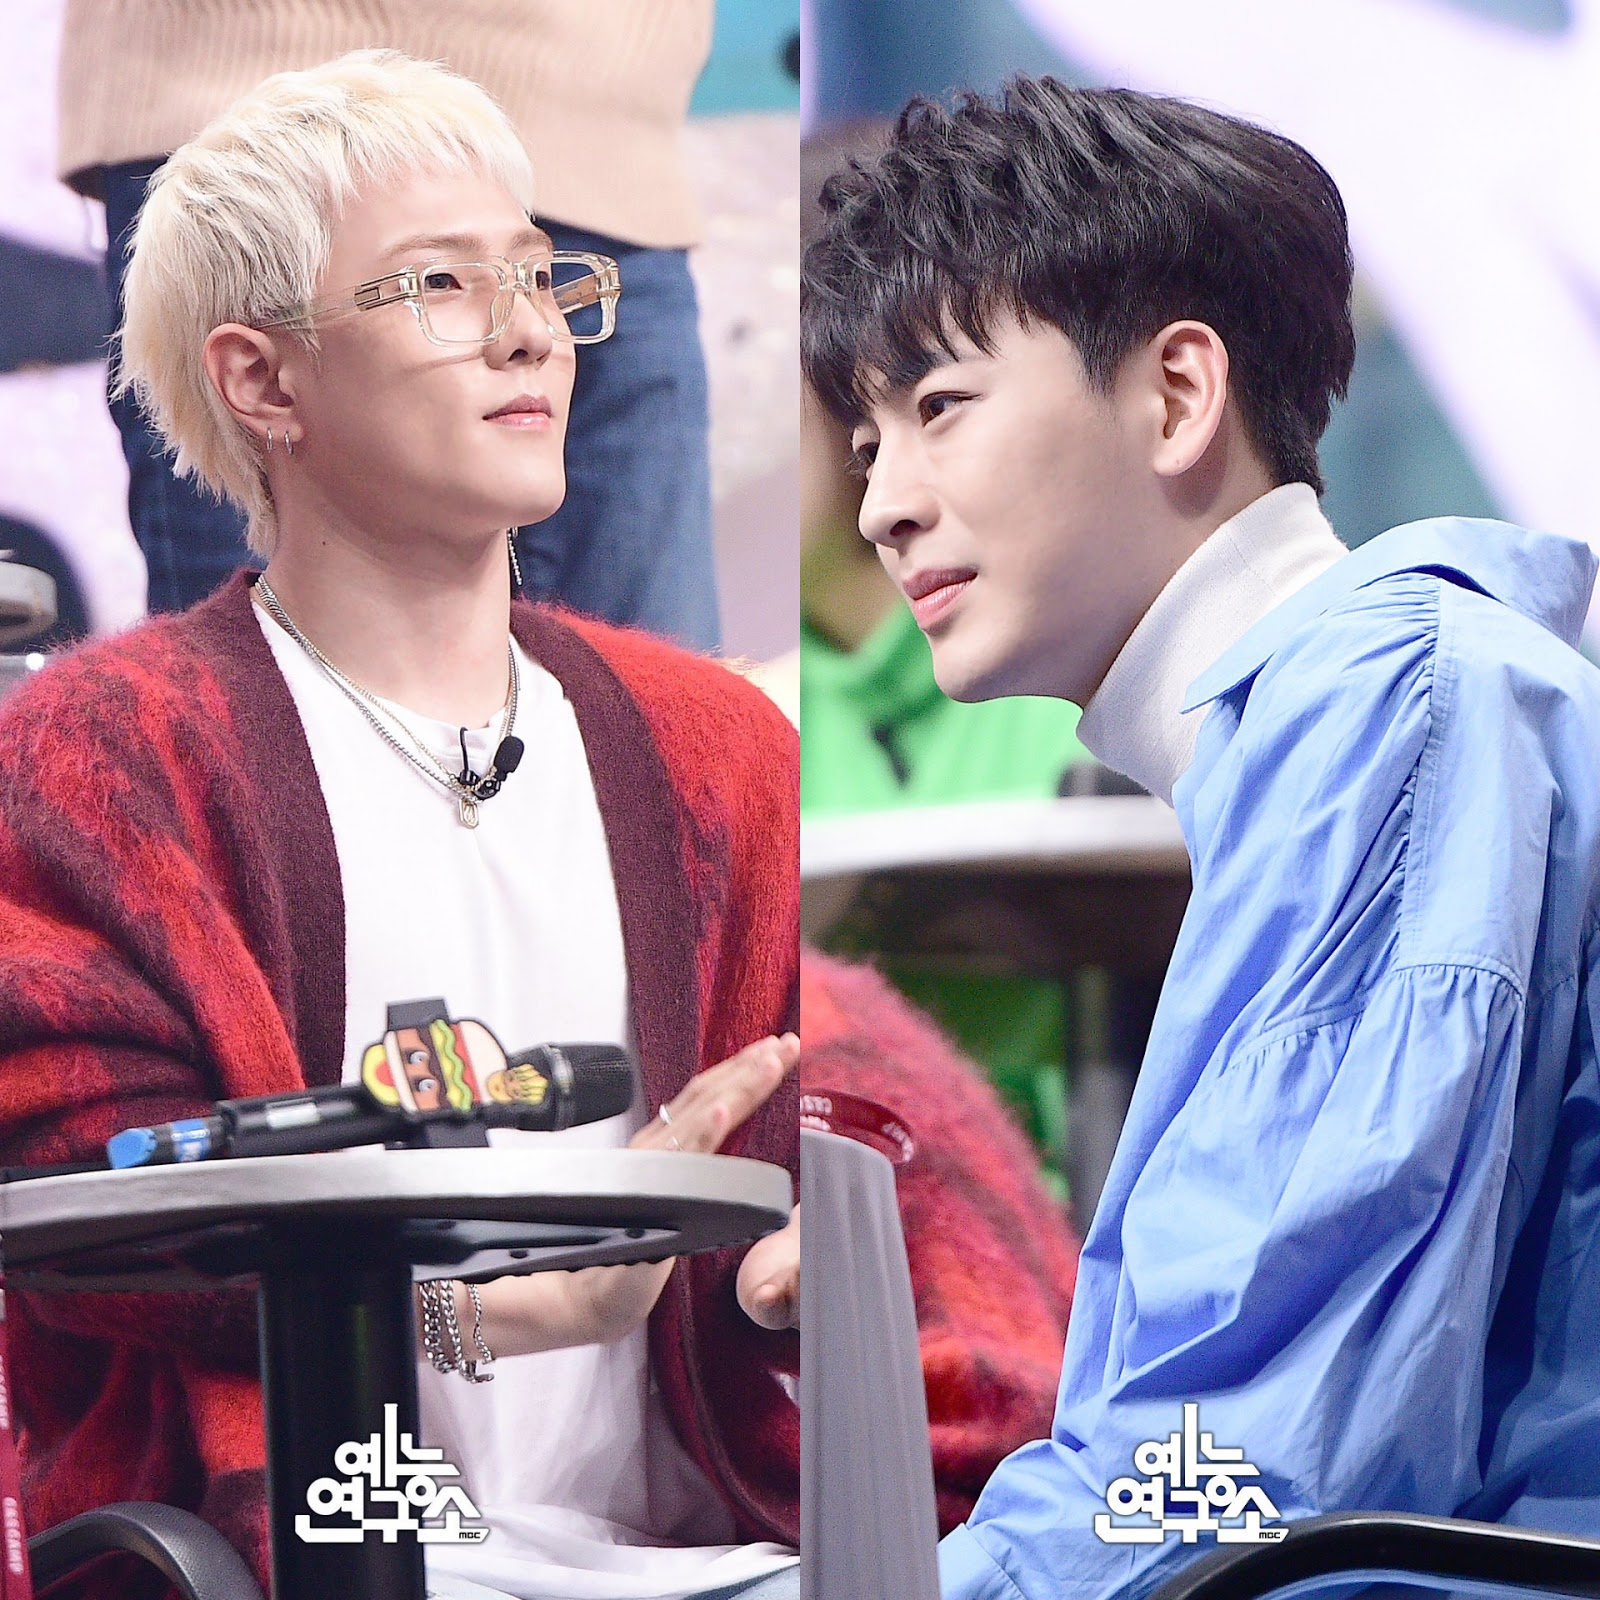 Full] iKON Yunhyeong and Donghyuk on King Of Masked Singer as